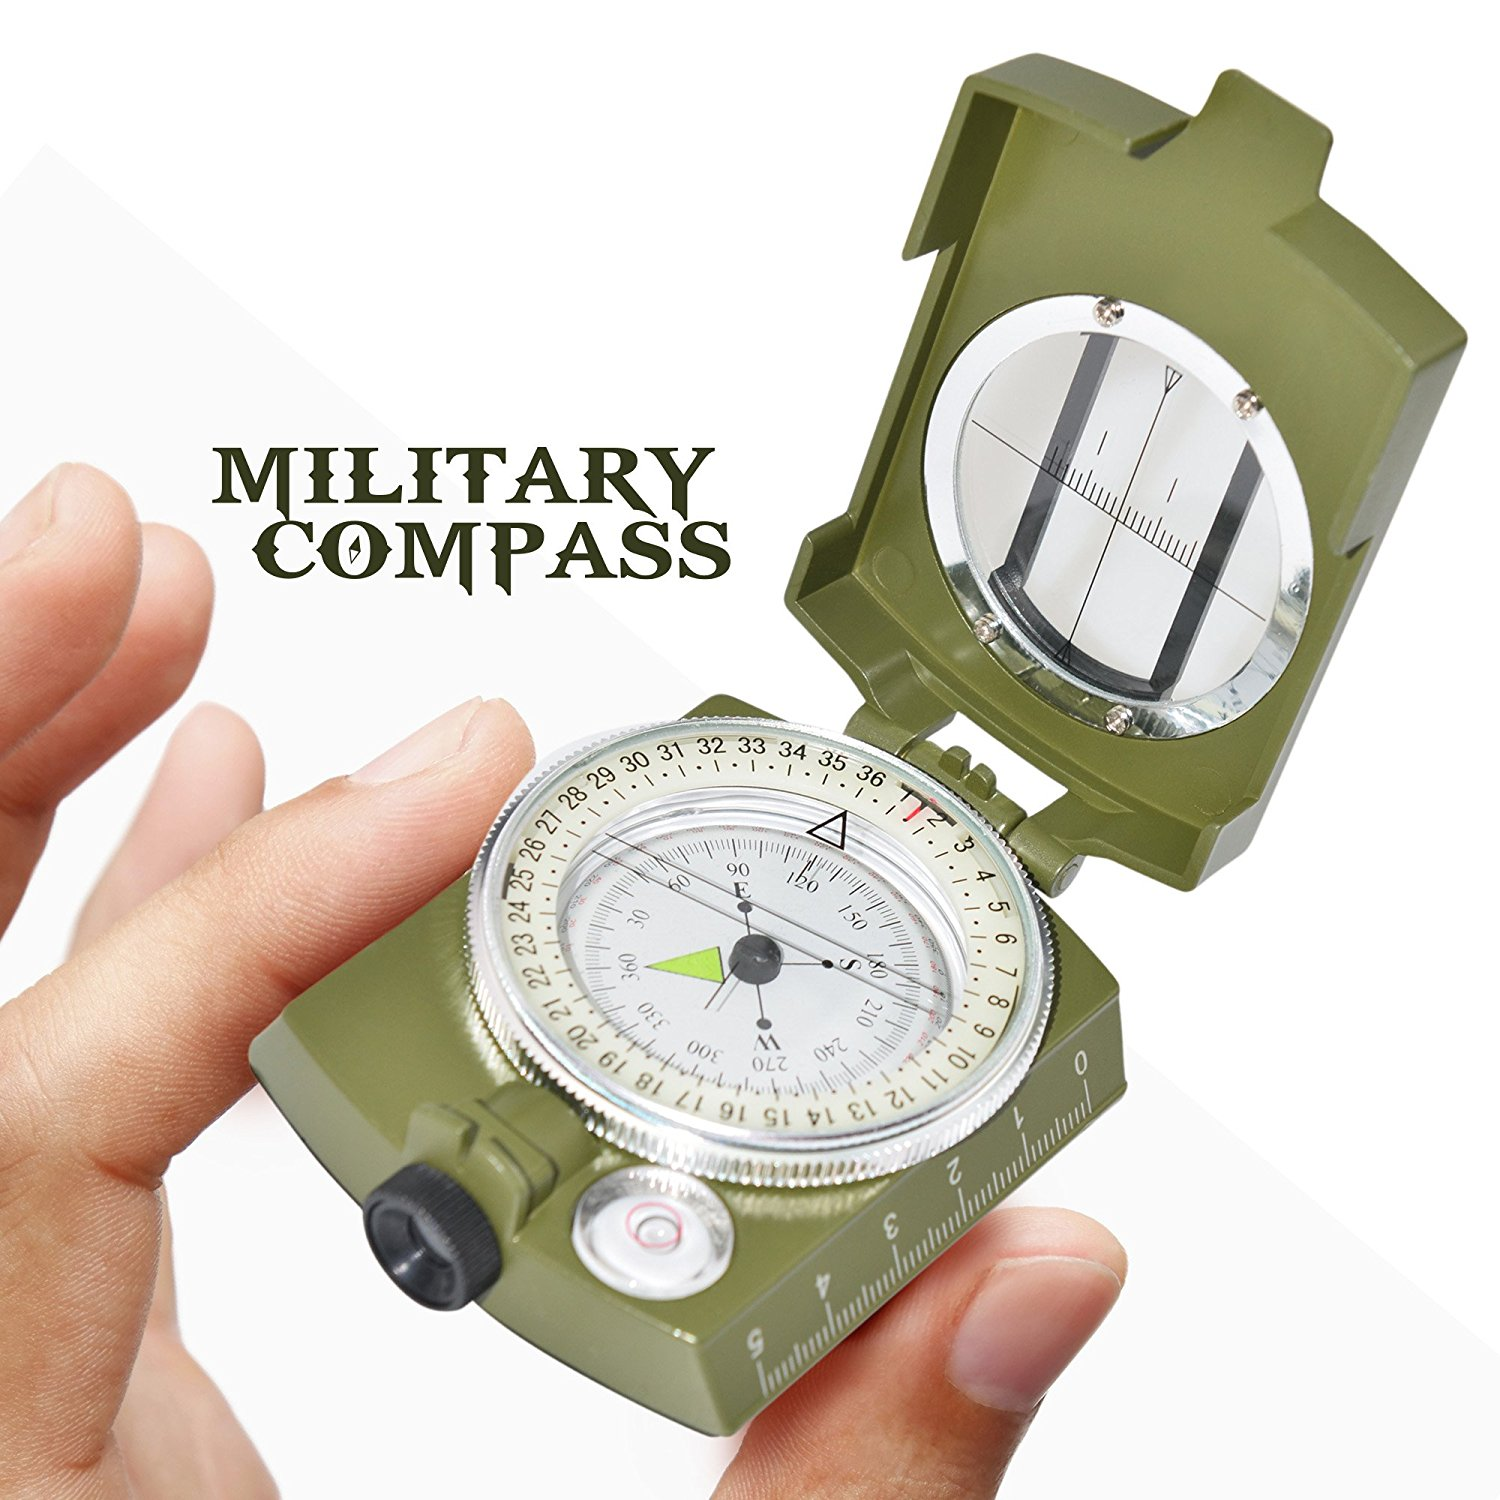 Professional Multifunction Metal Military Compass by Ninjetics - Highly Accurate, Waterproof with Luminous Display